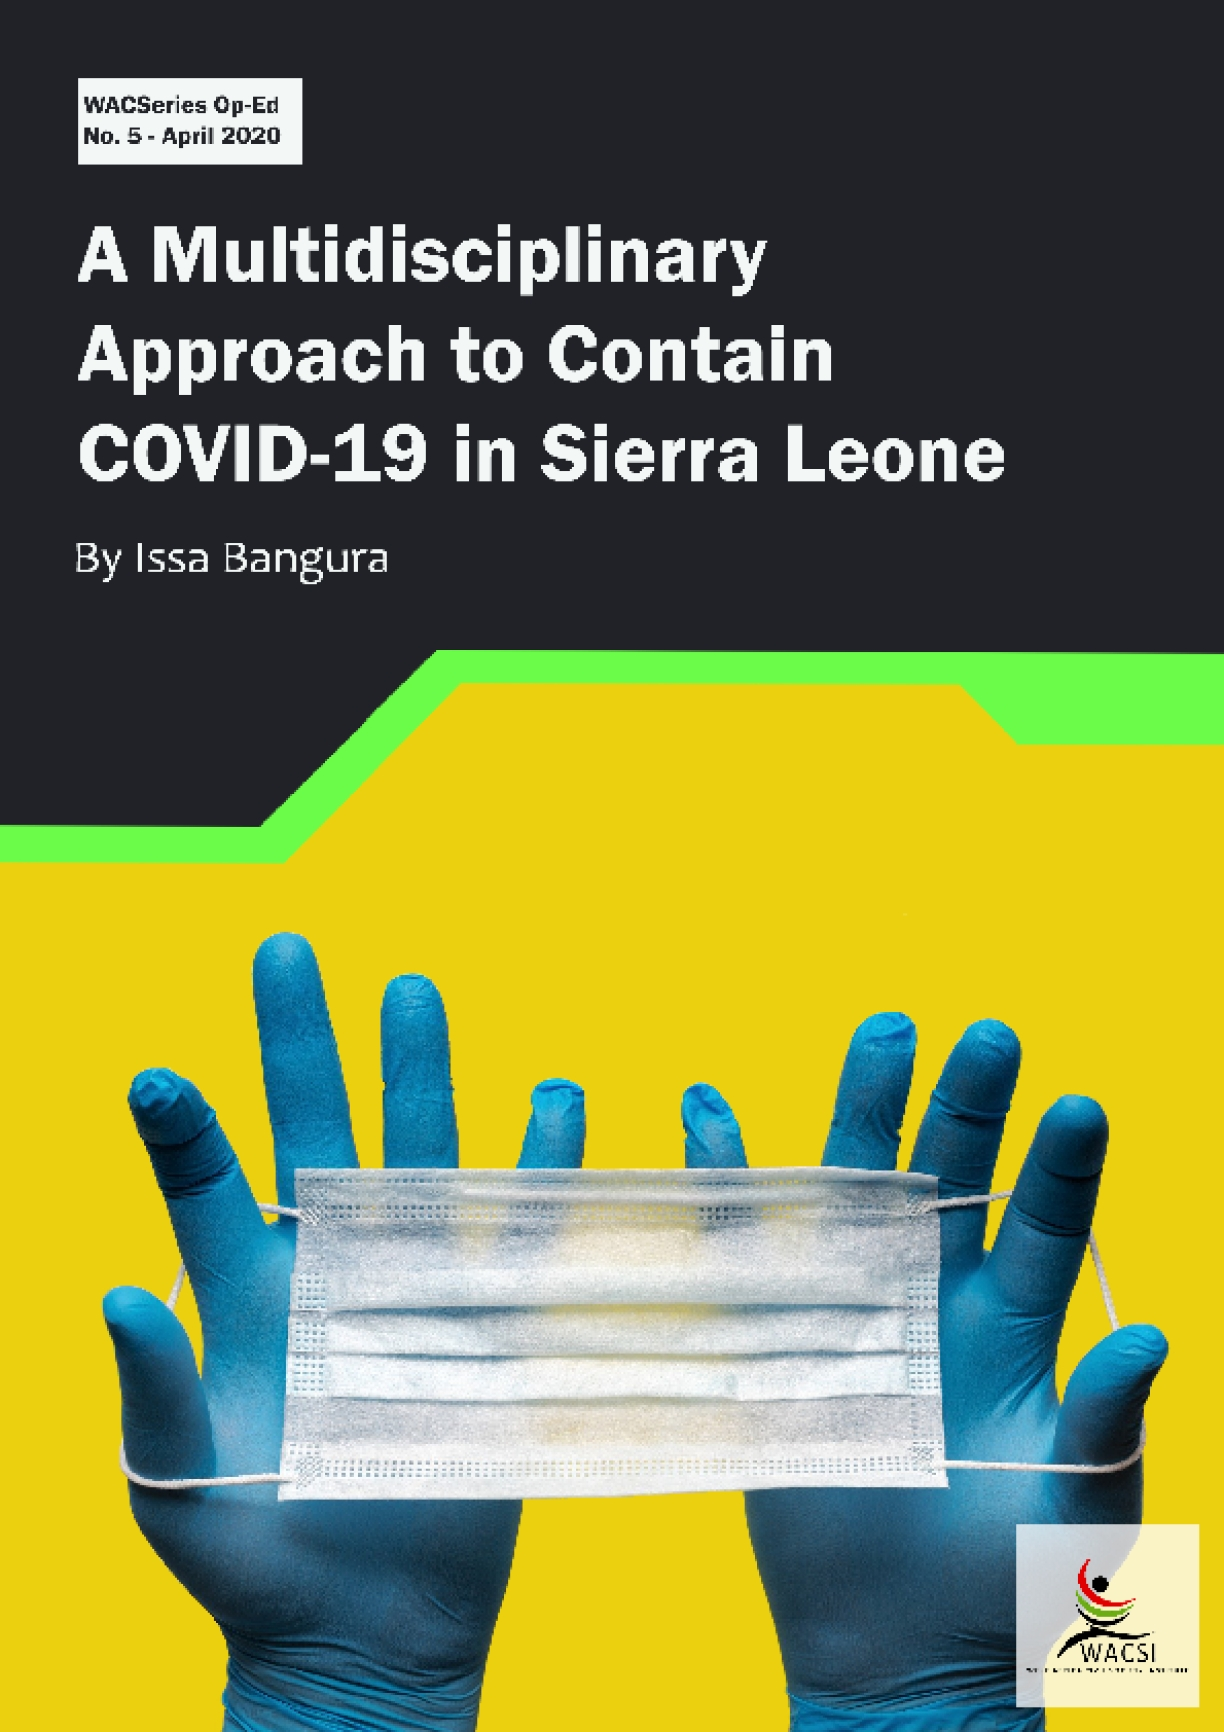 A Multidisciplinary Approach to Contain COVID-19 in Sierra Leone